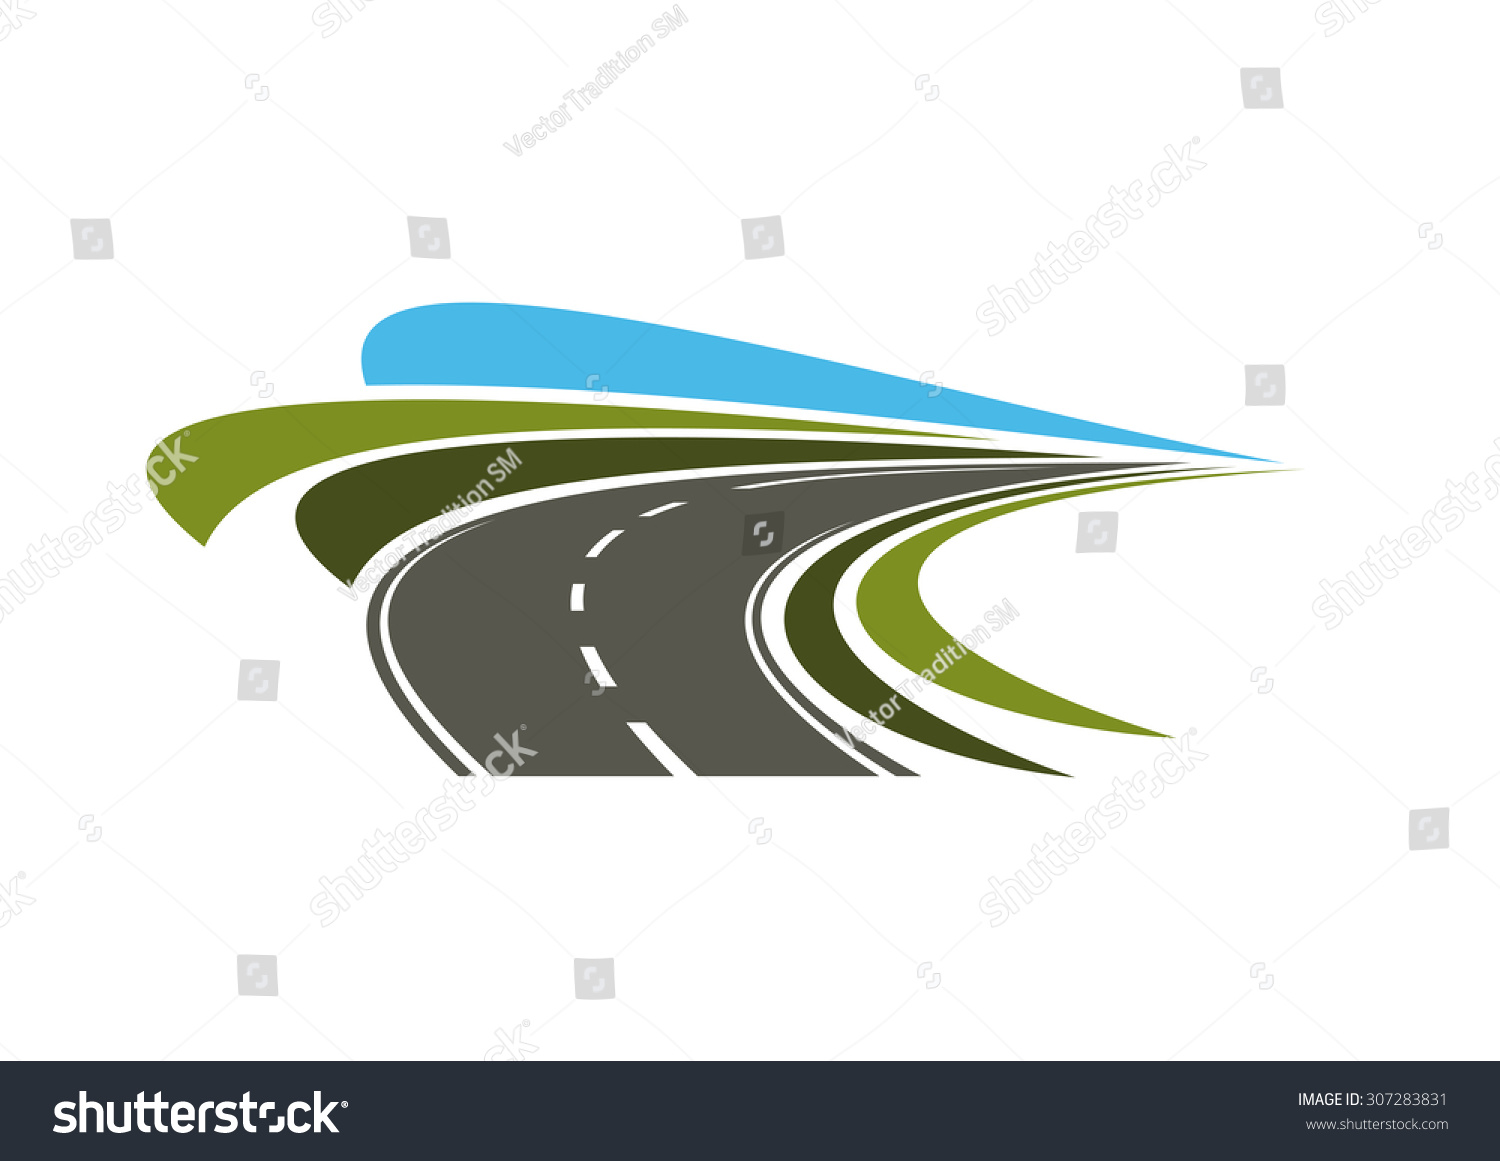 Steep Turn Of Speed Road Icon With Flowing Lines Of Green ...